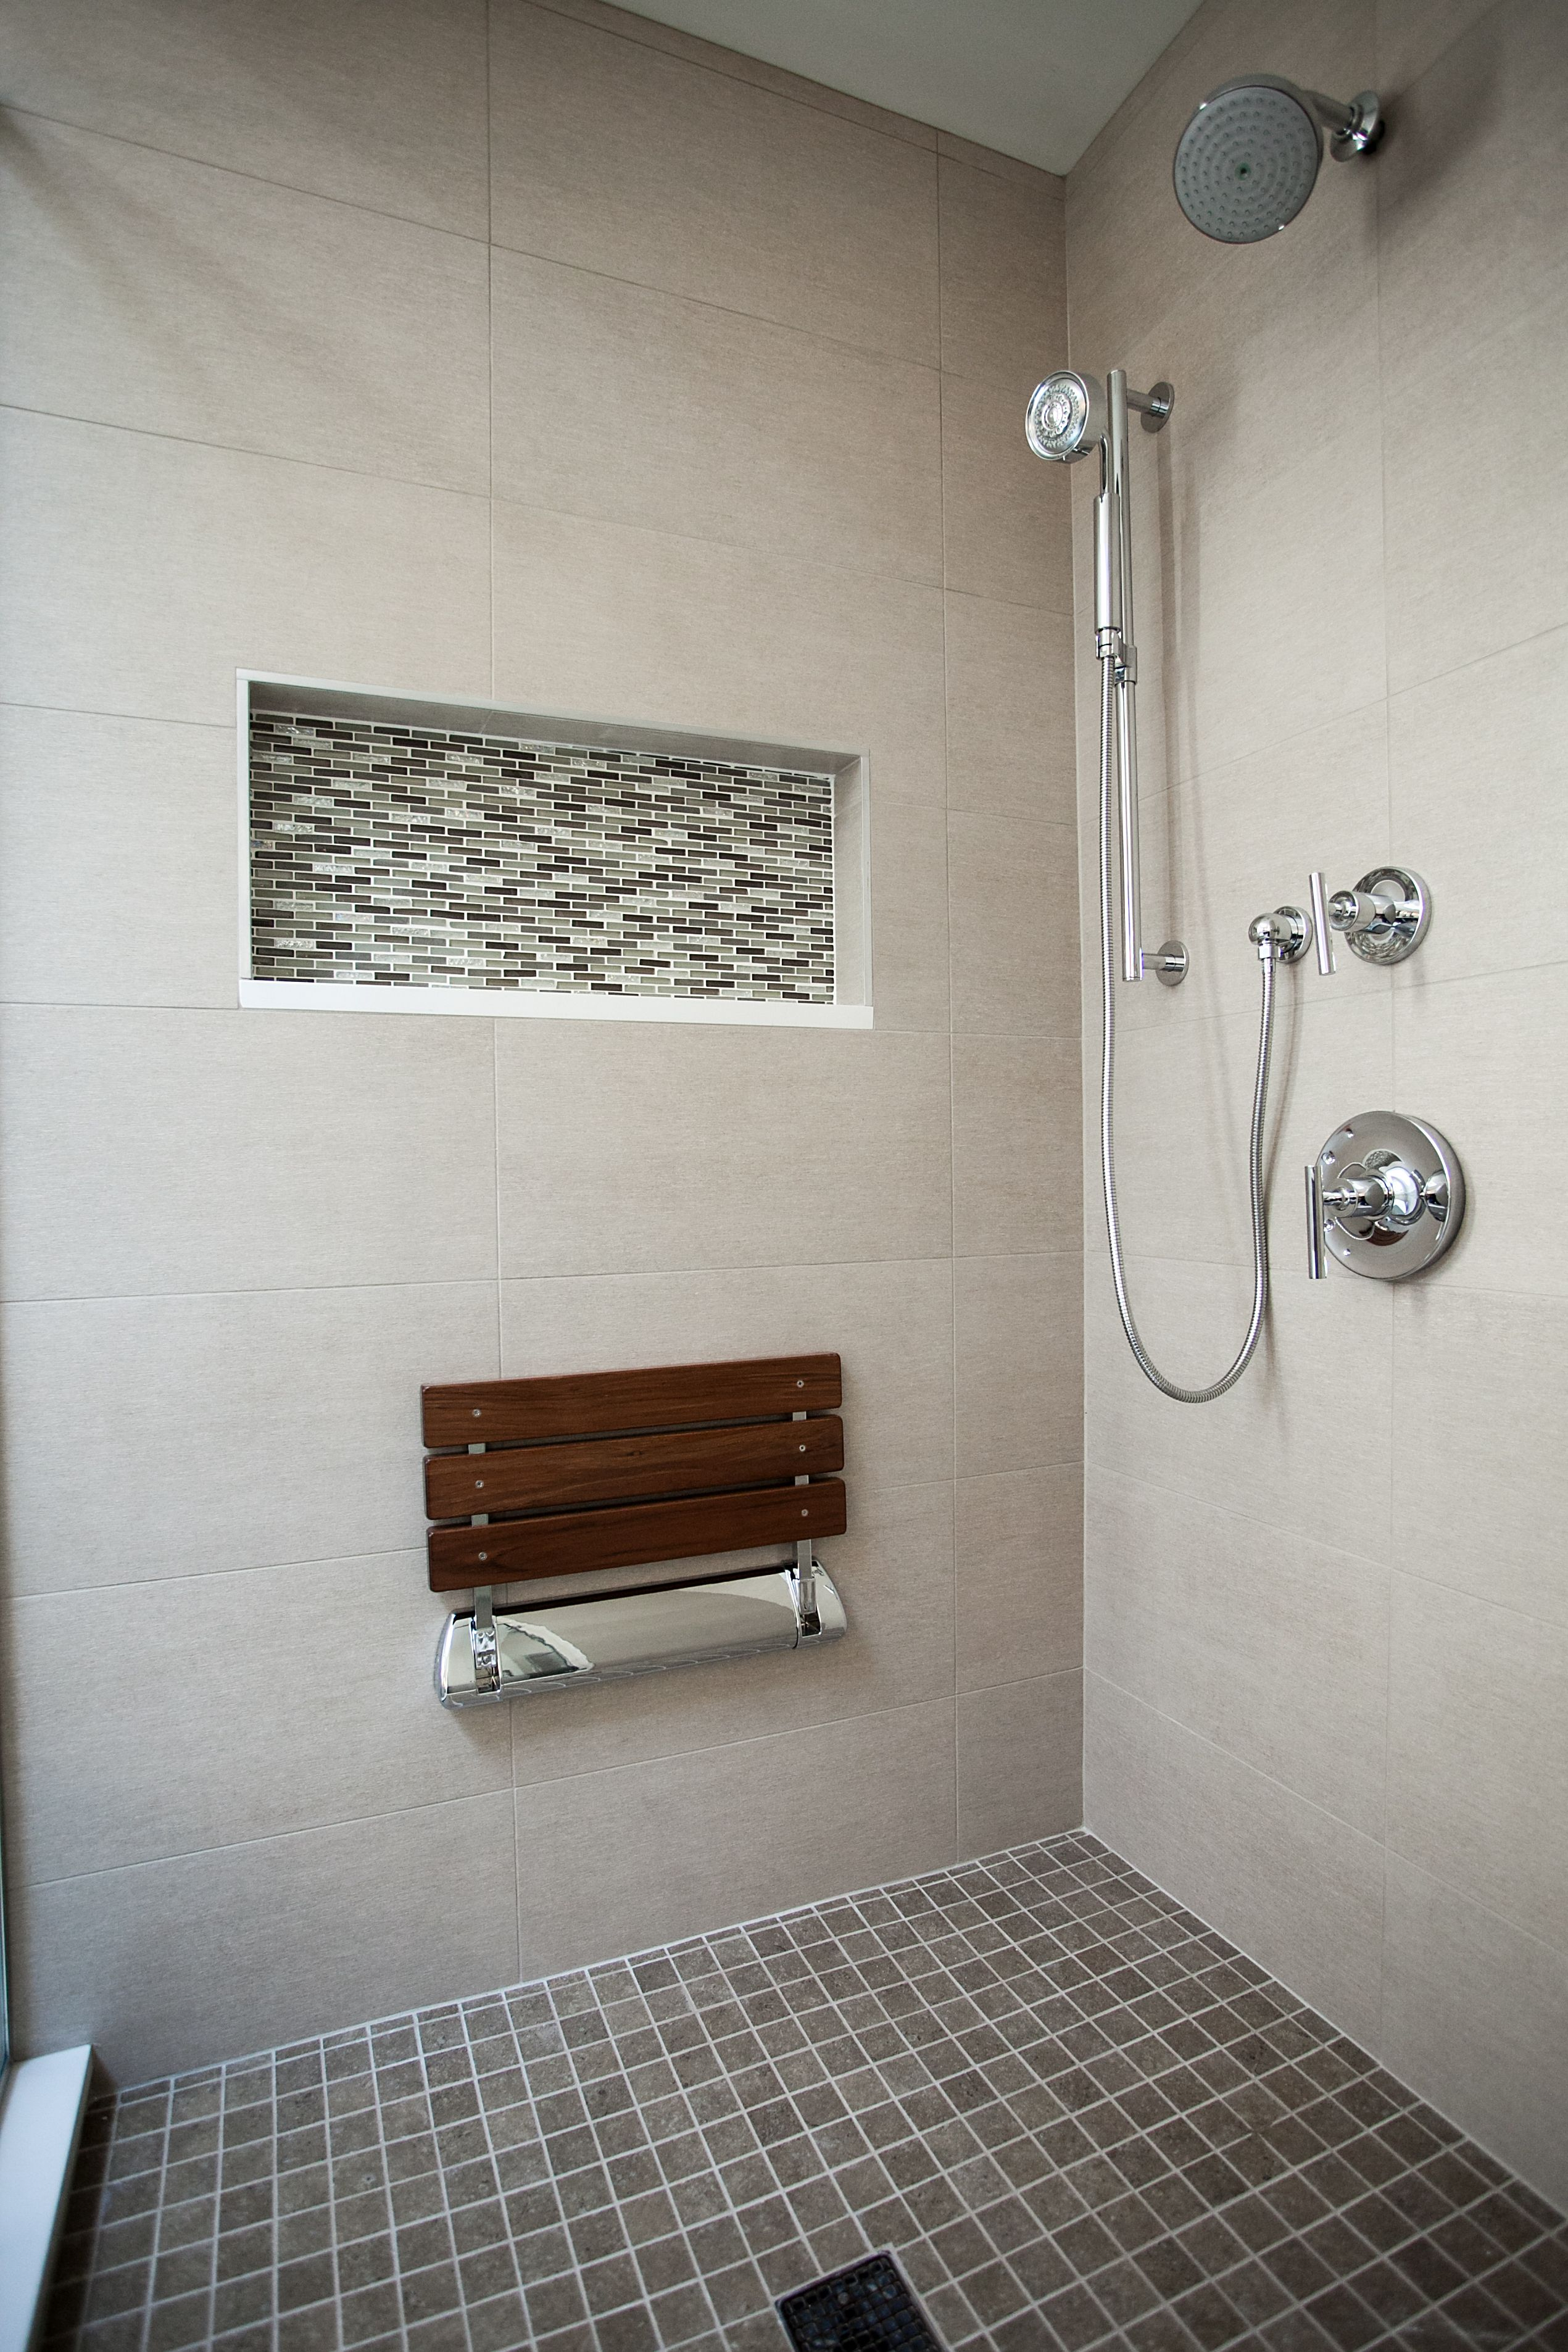 Bath Masters Naperville contemporary oasis in naperville, il large shower with handheld